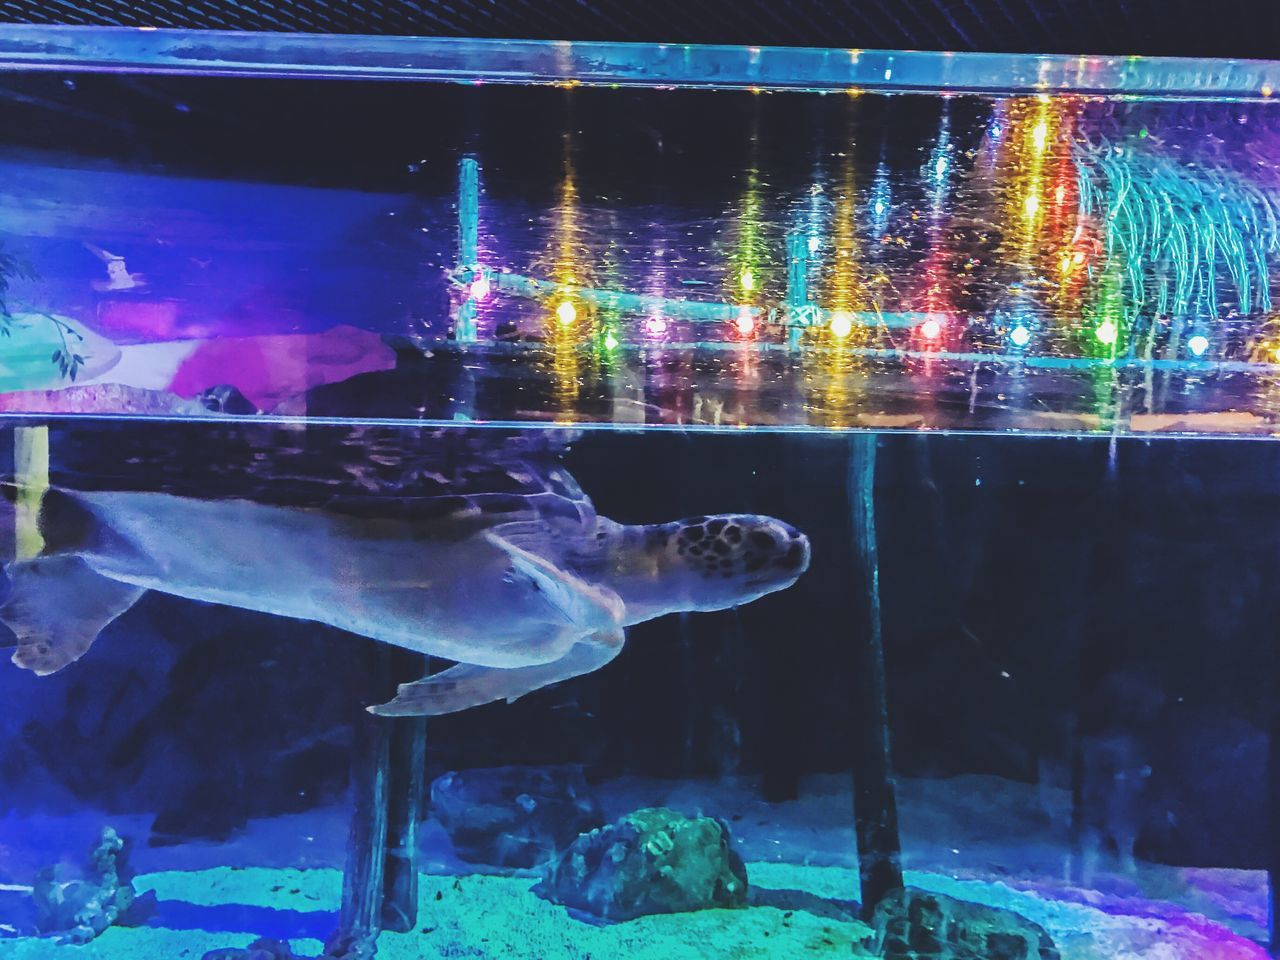 fish, water, underwater, aquarium, sea life, animal themes, swimming, animals in captivity, animals in the wild, animal wildlife, one animal, indoors, no people, nature, jellyfish, undersea, multi colored, close-up, sea, goldfish, beauty in nature, day